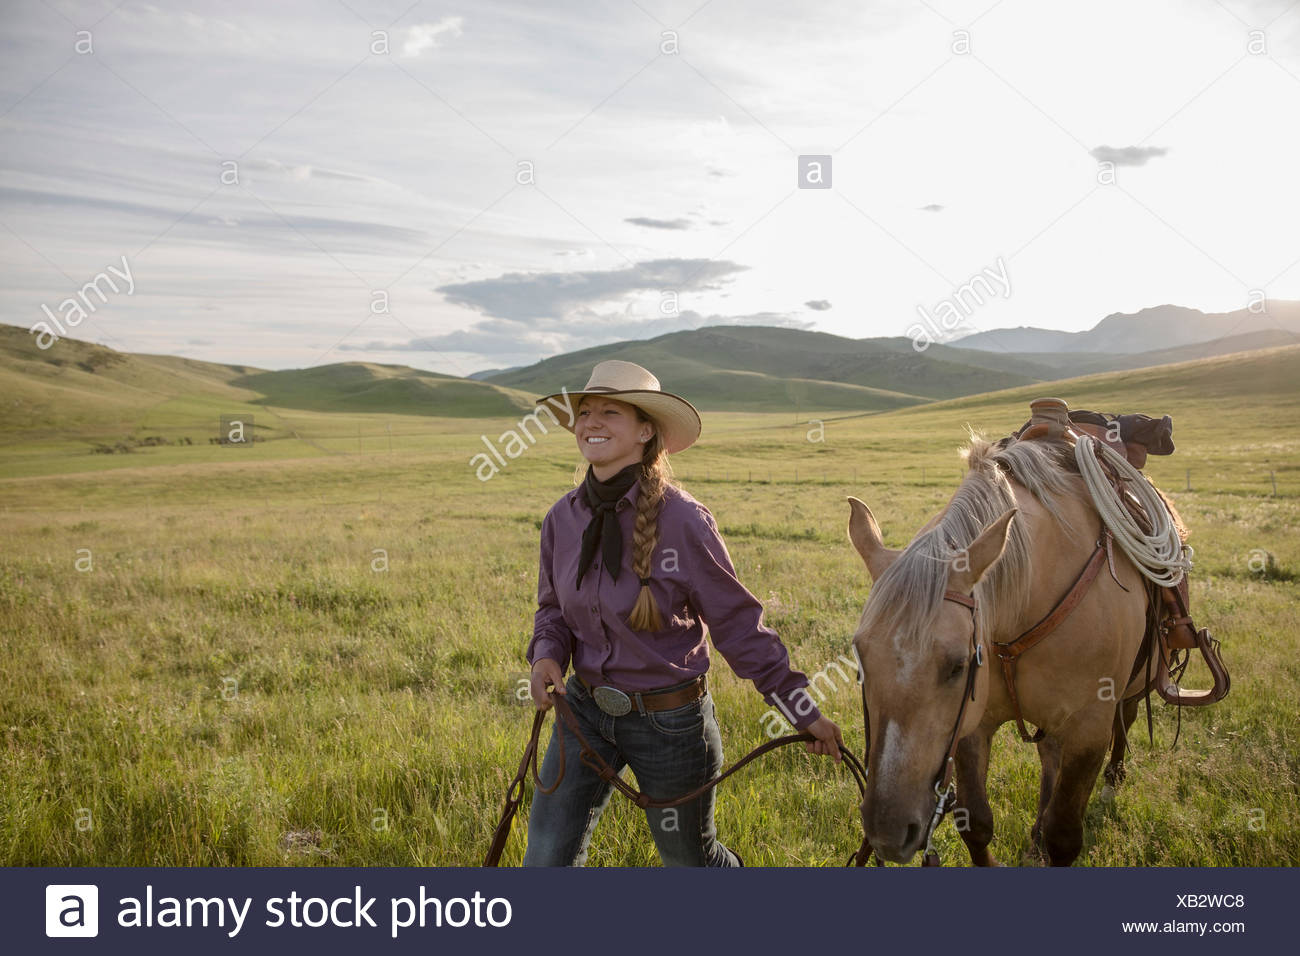 Smiling female rancher walking horse sunny remote field - Stock Image